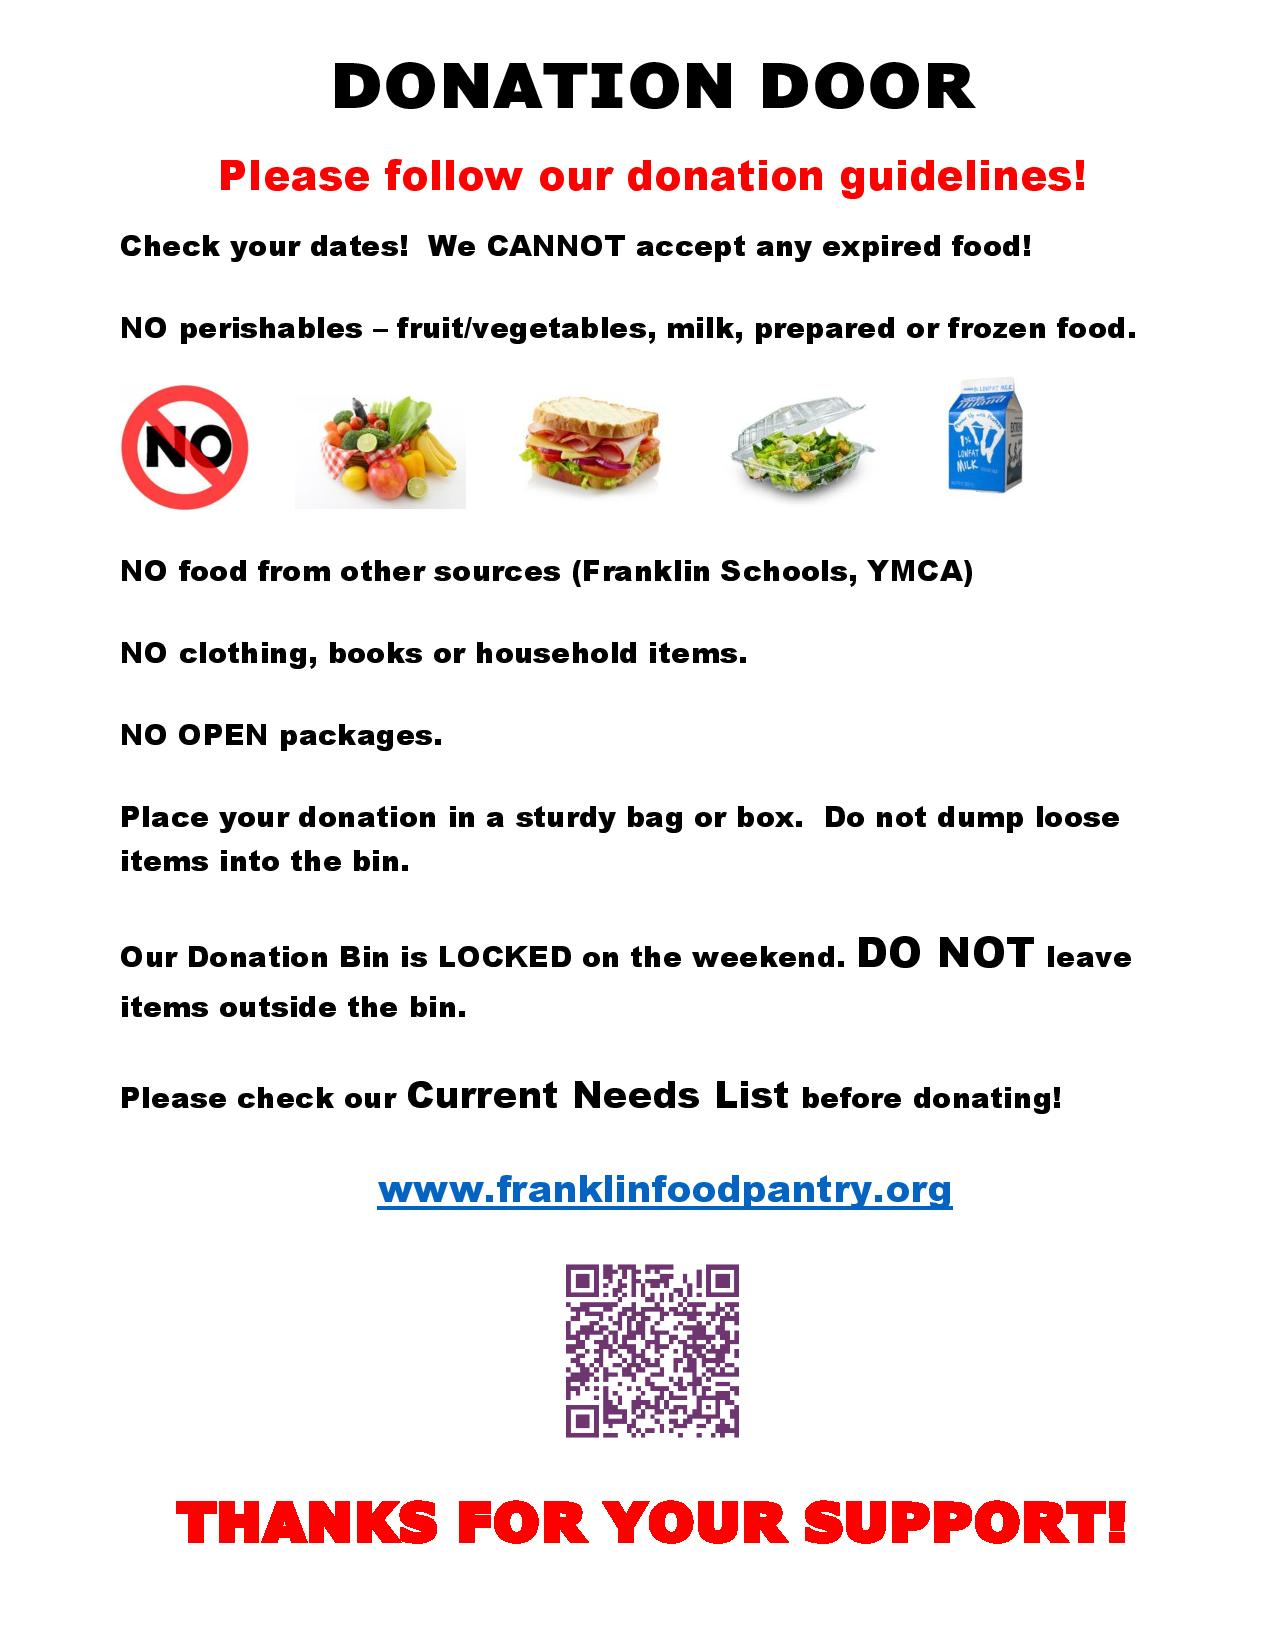 Franklin Food Pantry donation reminders